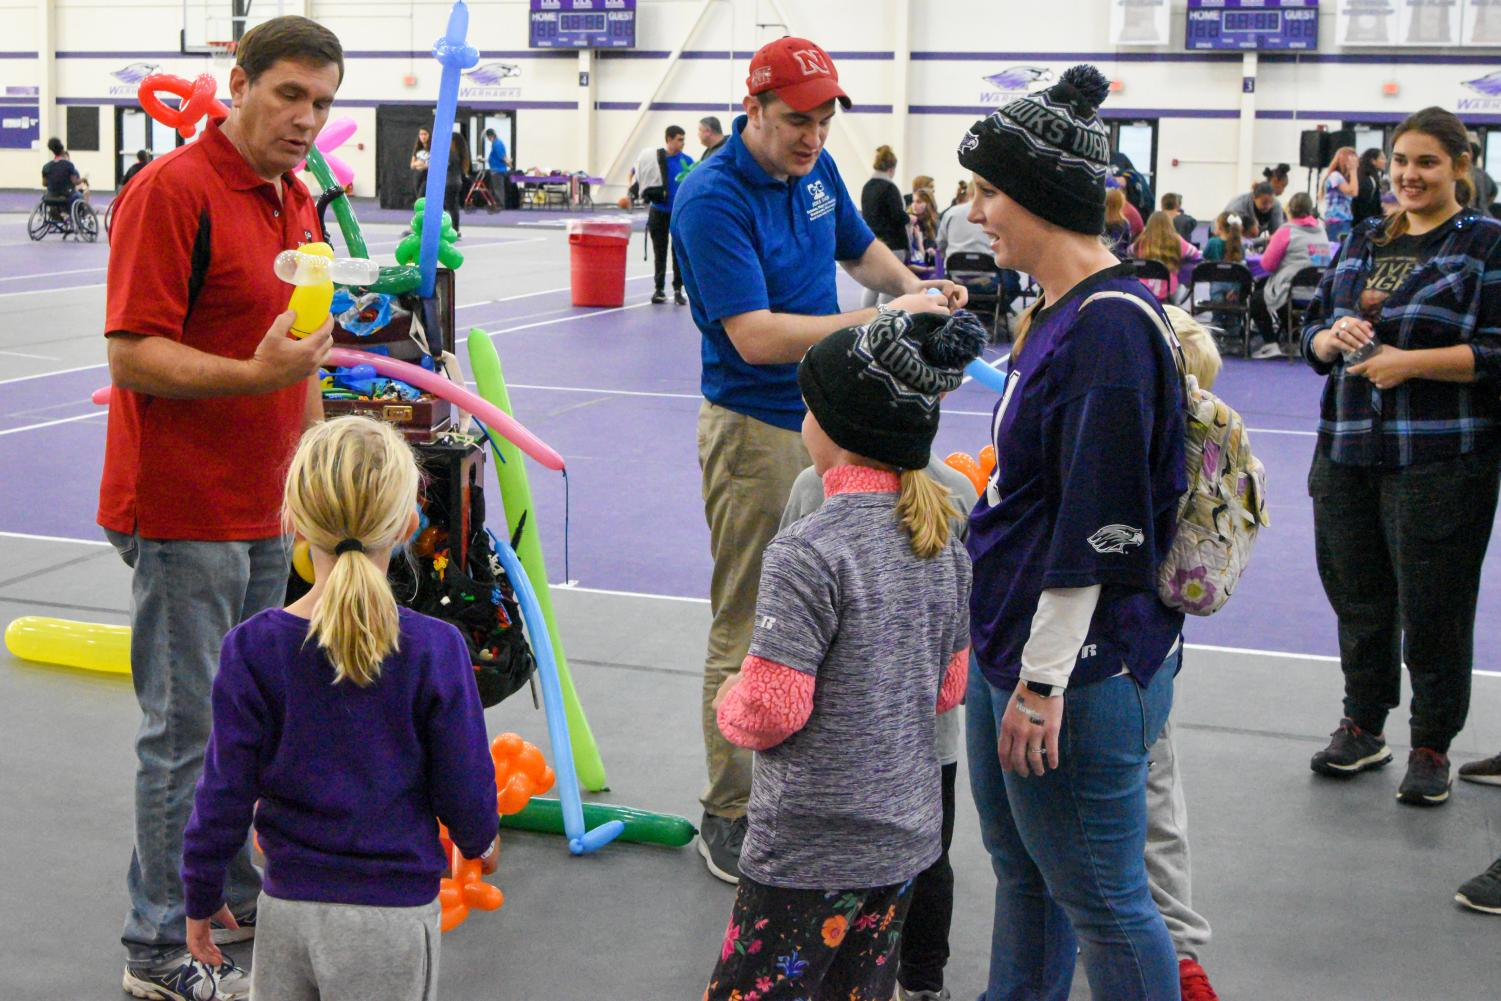 Families enjoy balloon making in the Kachel  Fieldhouse during the rainy Saturday, Oct. 5 Family Fest event.